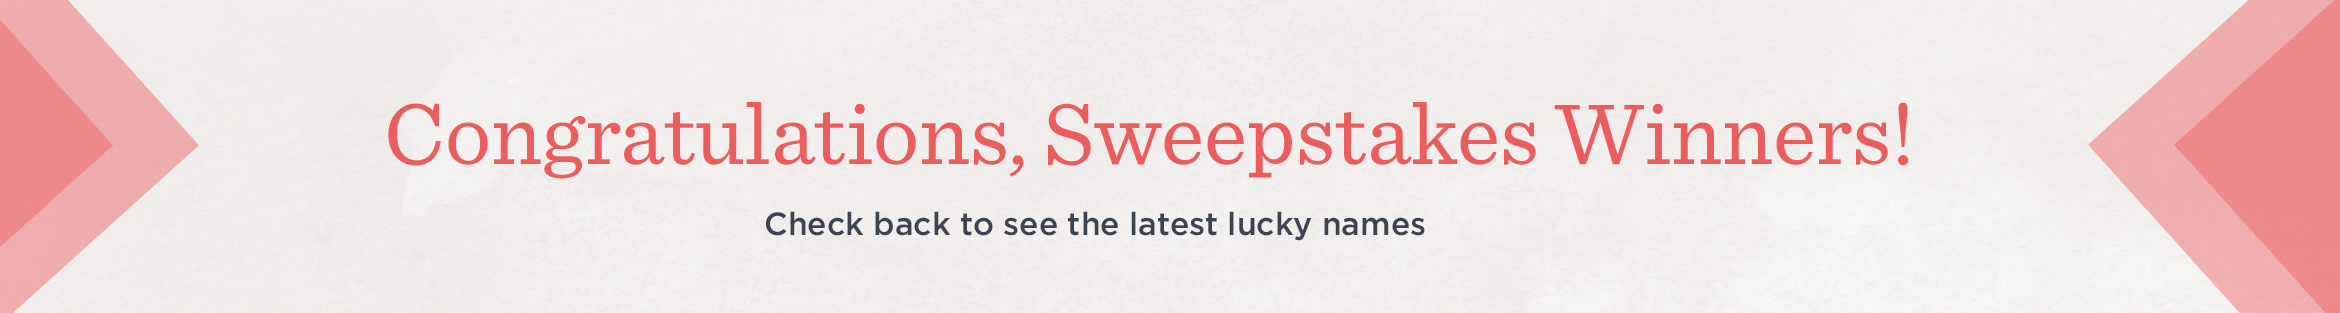 Congratulations, Sweepstakes Winners! Check back to see the latest lucky names